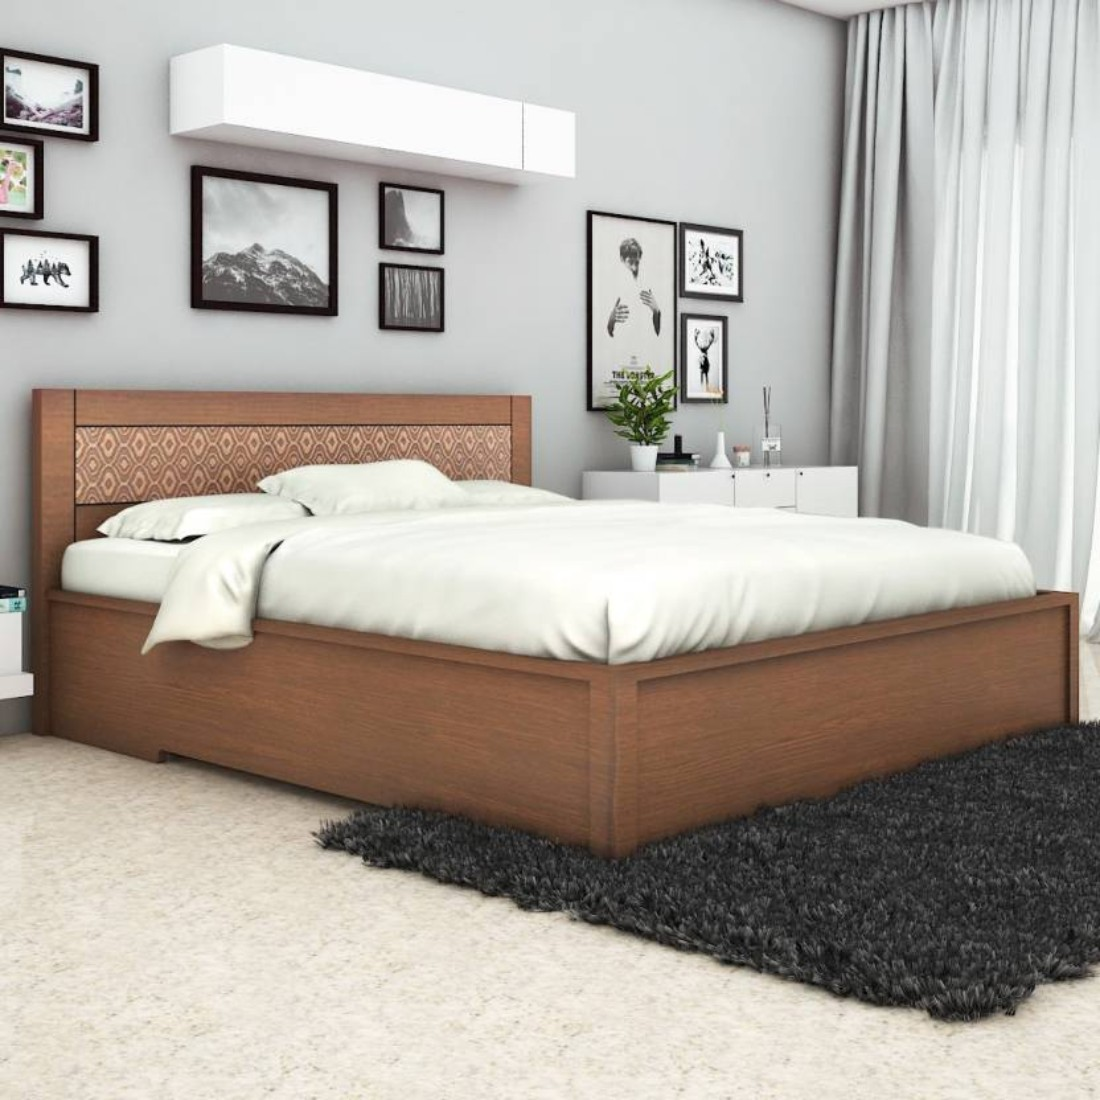 Nebula Engineered Wood Hydraulic Storage King Size Bed in Coffee Brown Colour by HomeTown